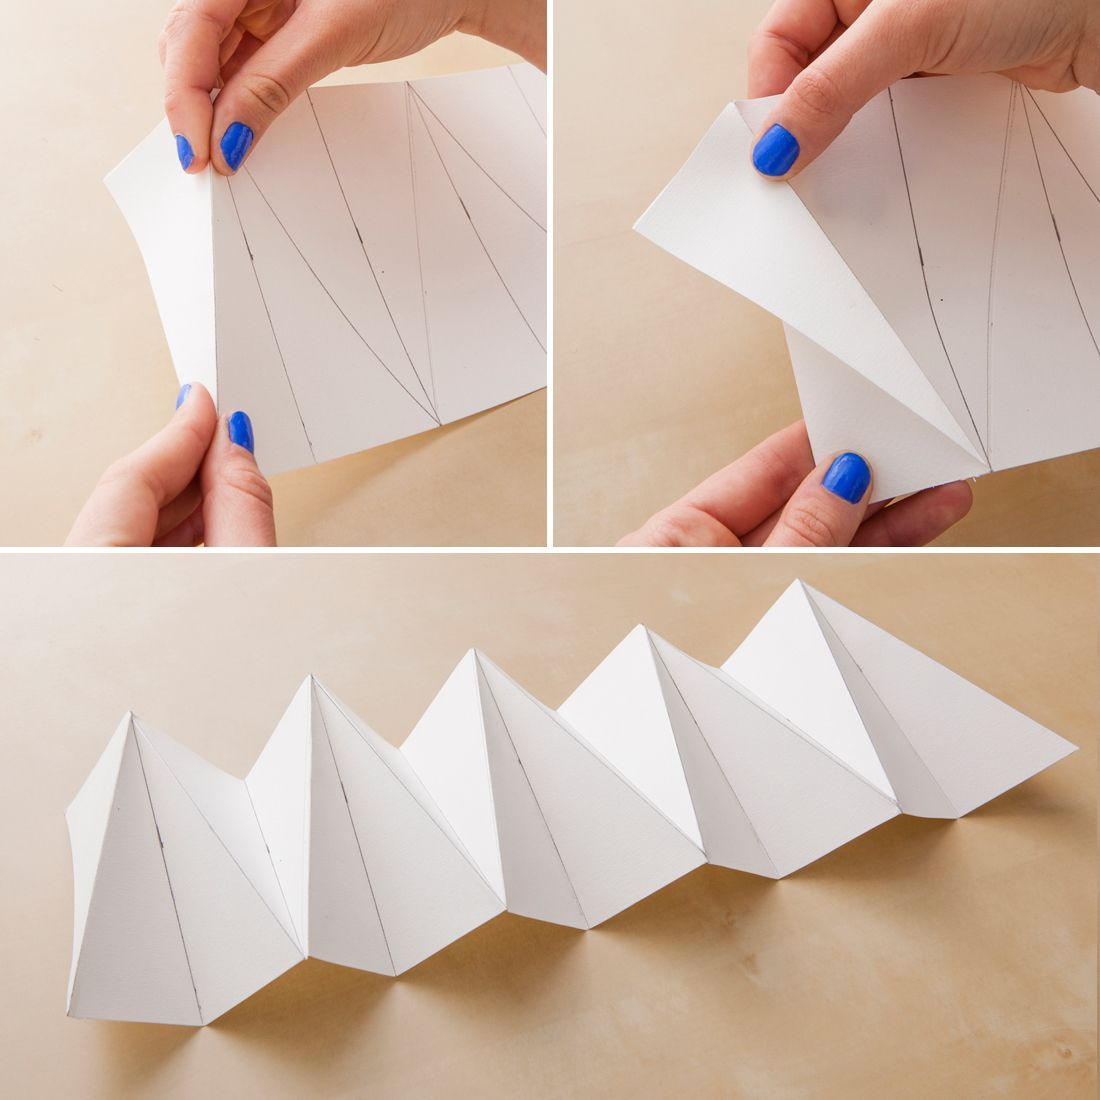 These Diy Origami Lamp Shades Are Our New Obsession Origami Lampshade Origami Lights Origami Lamp